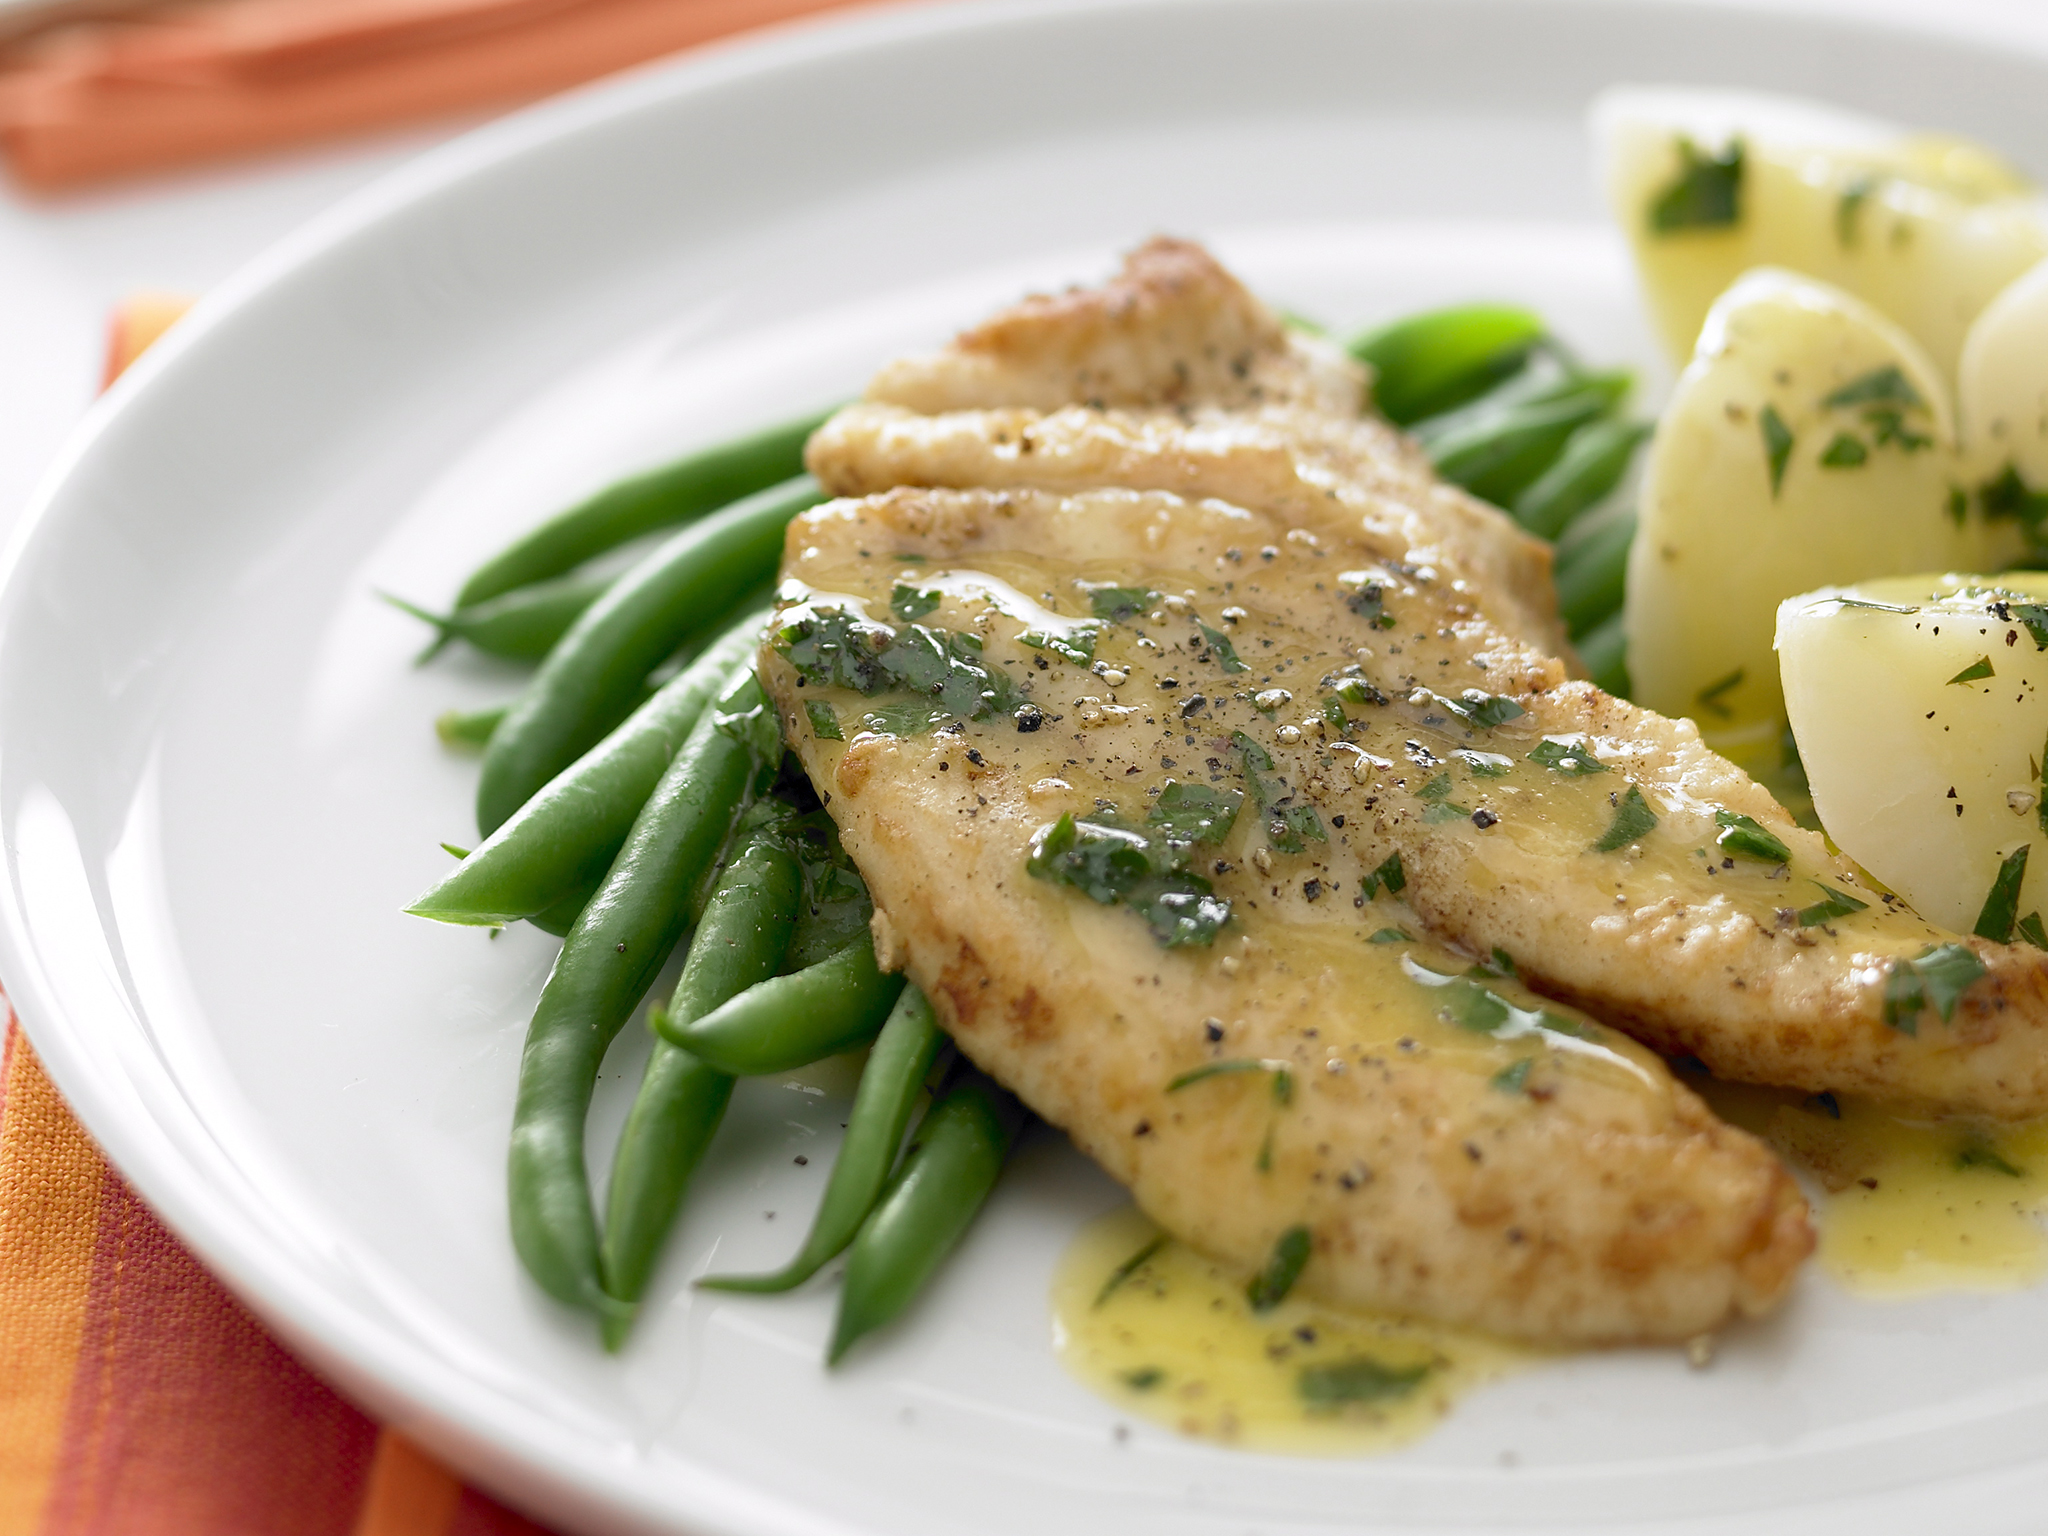 Awake the party animal in you with uncultured cafe bar for Lemon cream sauce for fish